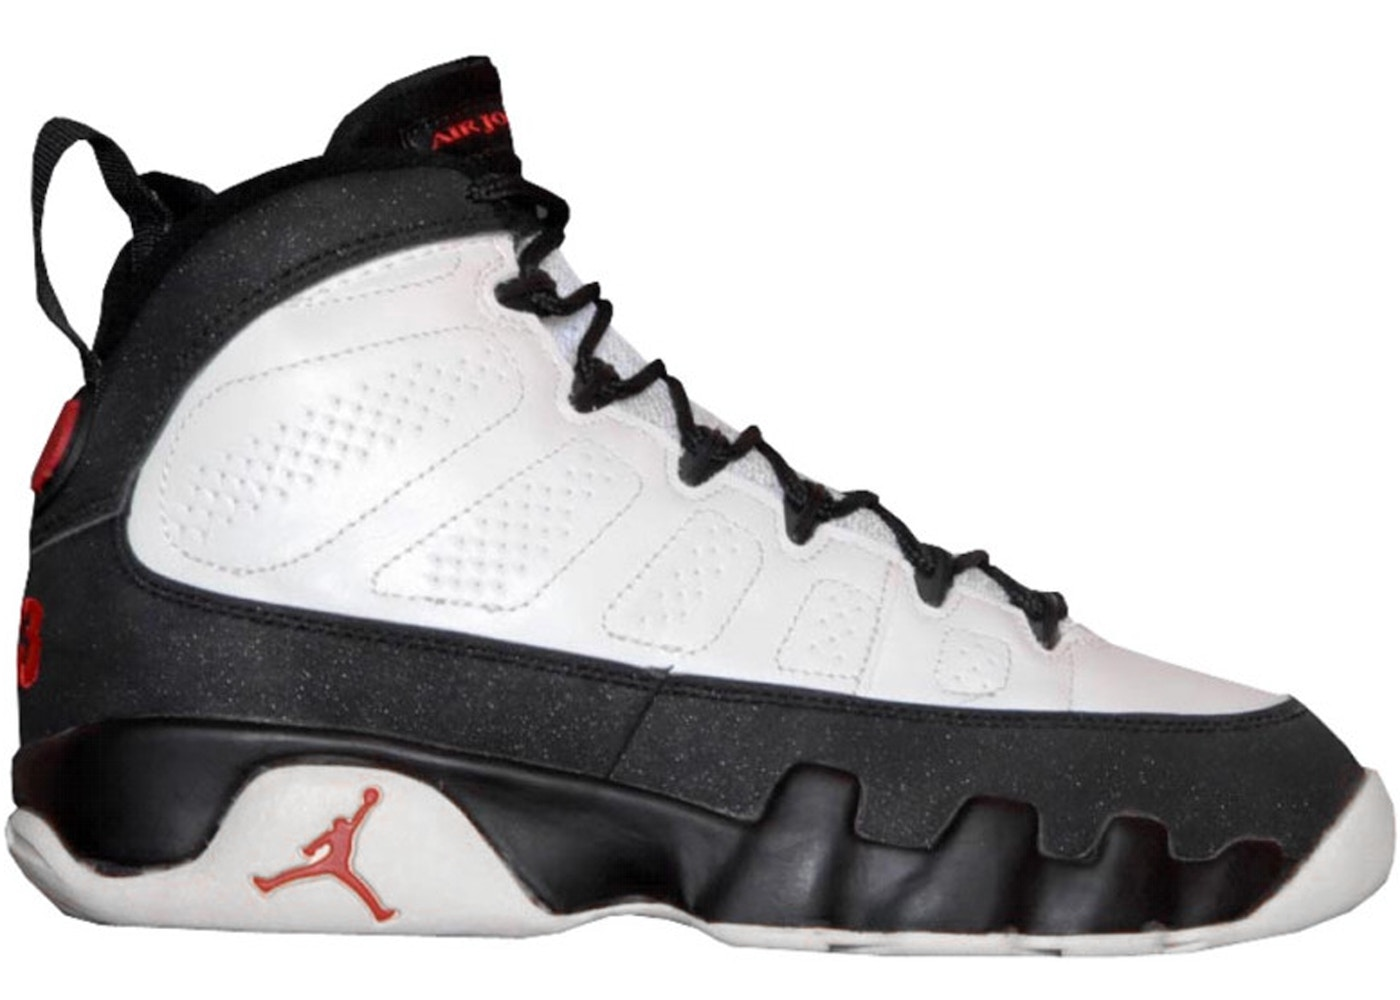 cheaper 11da0 c7c52 Jordan 9 OG Chicago (1993) - 130182-100